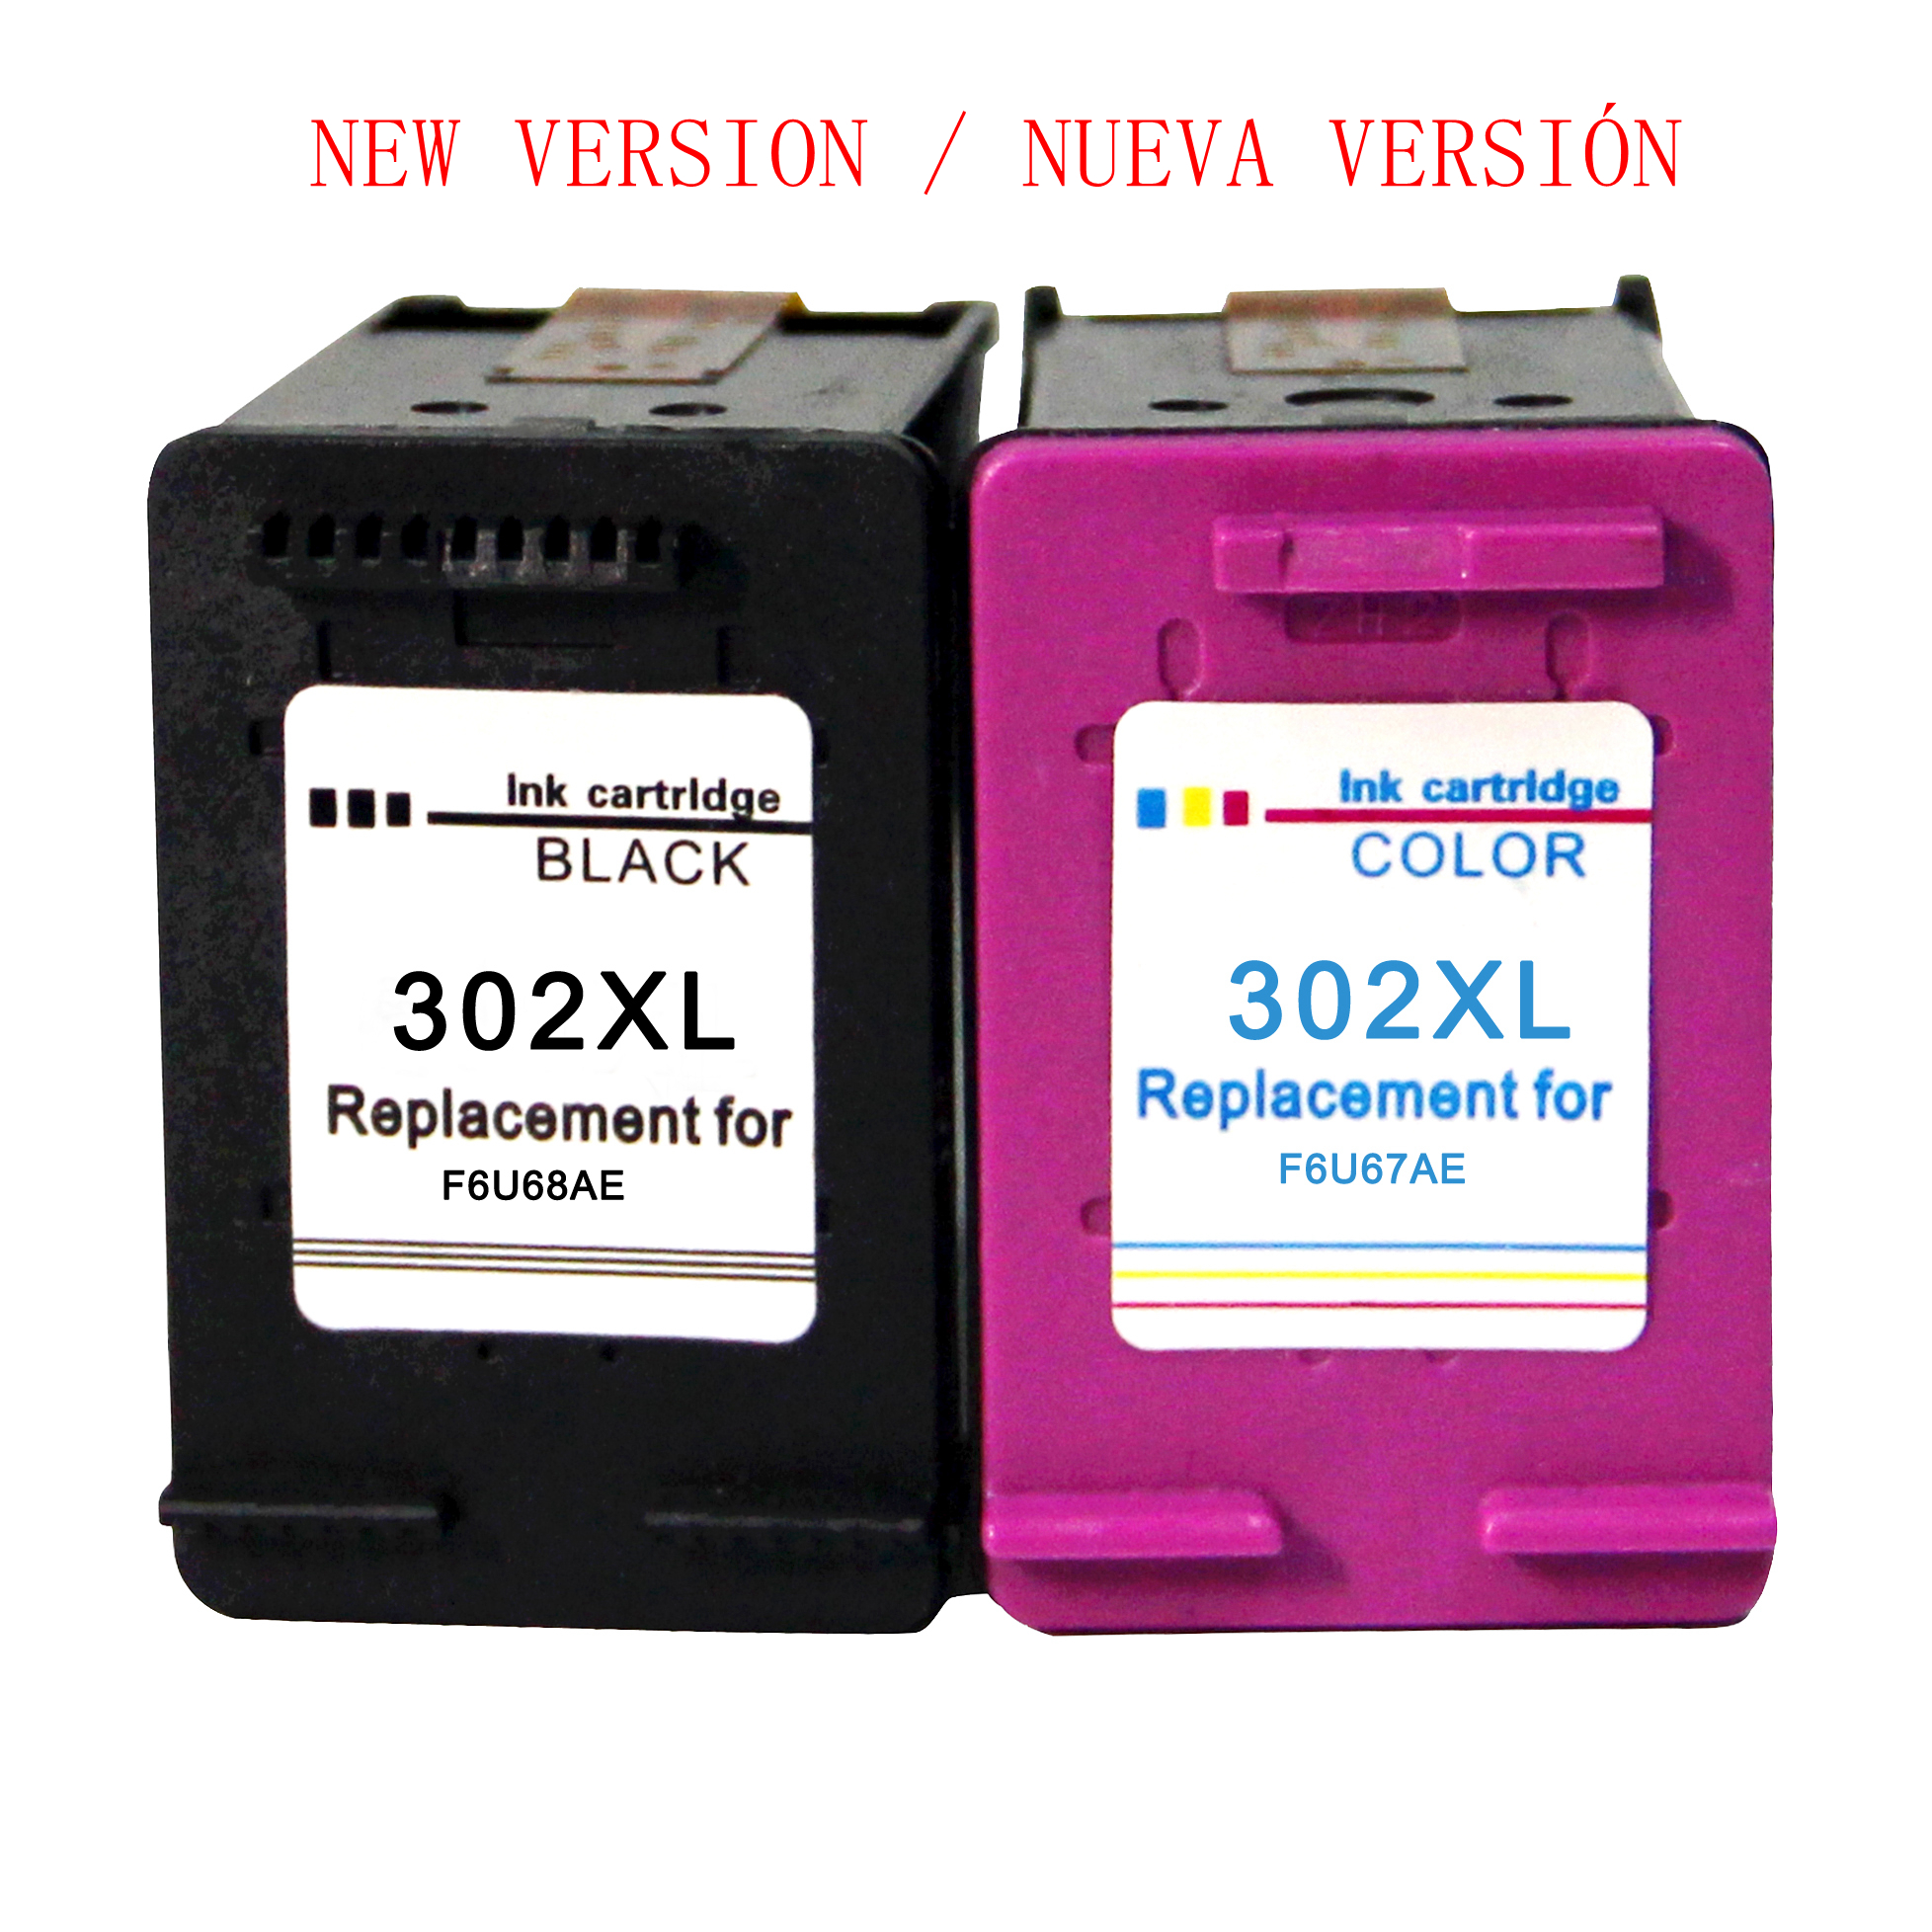 Compatible 302XL ink cartridges for <font><b>HP</b></font> 302 for <font><b>HP</b></font> OfficeJet 5220 5222 5230 5232 3831 Envy 3833 <font><b>deskJet</b></font> <font><b>3639</b></font> image